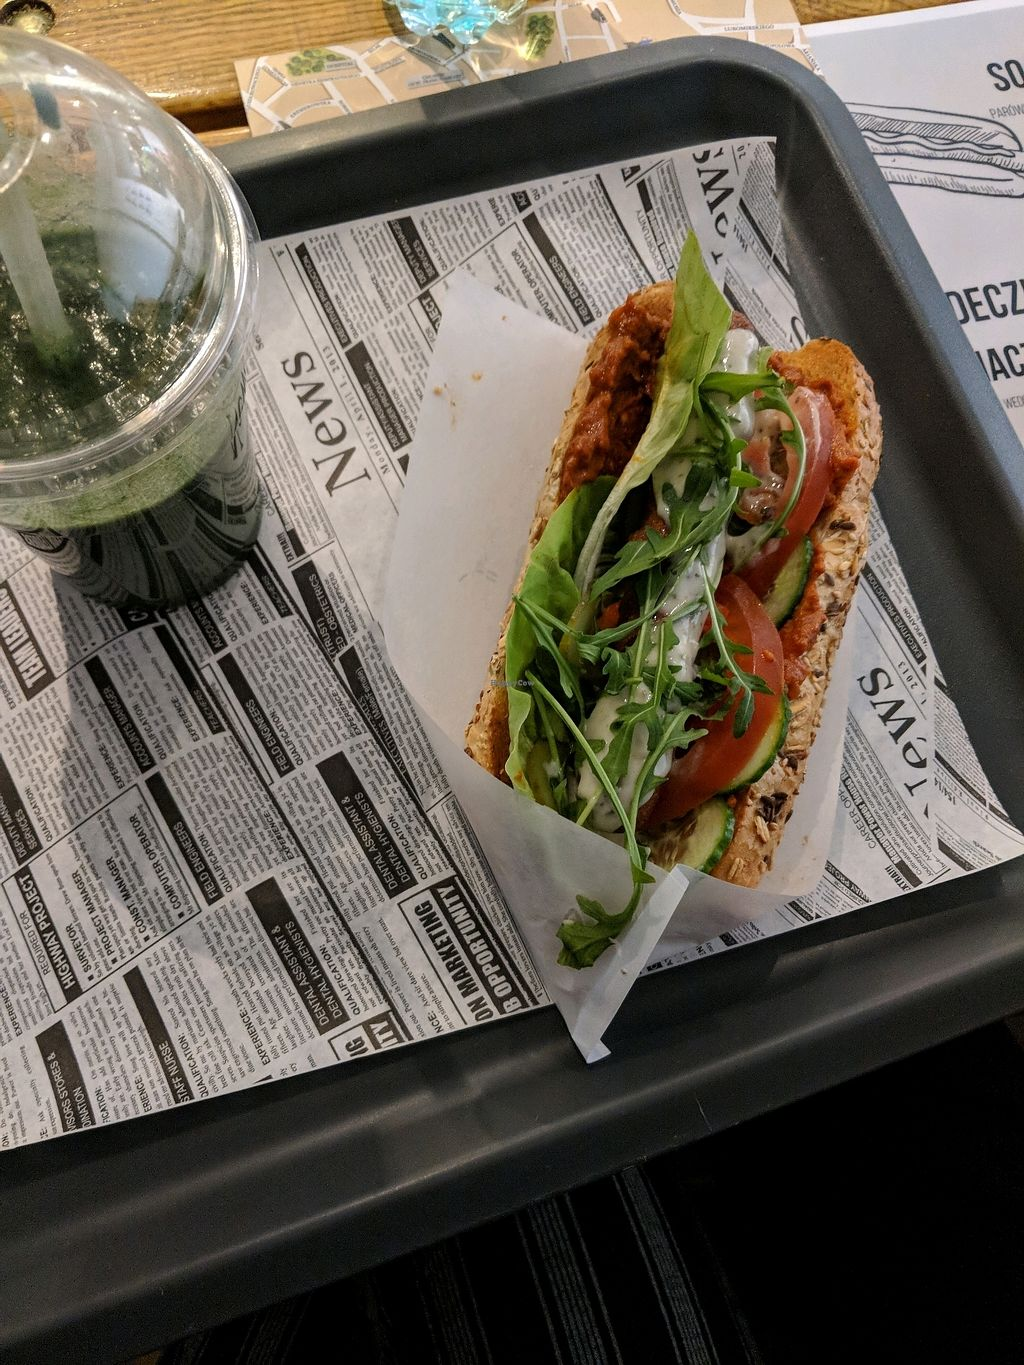 "Photo of Free Farma Burgerownia Roslinna  by <a href=""/members/profile/UpasanaKadam"">UpasanaKadam</a> <br/>soy dog with chilli and garlic sauce and a green juice  <br/> March 24, 2018  - <a href='/contact/abuse/image/73850/375315'>Report</a>"